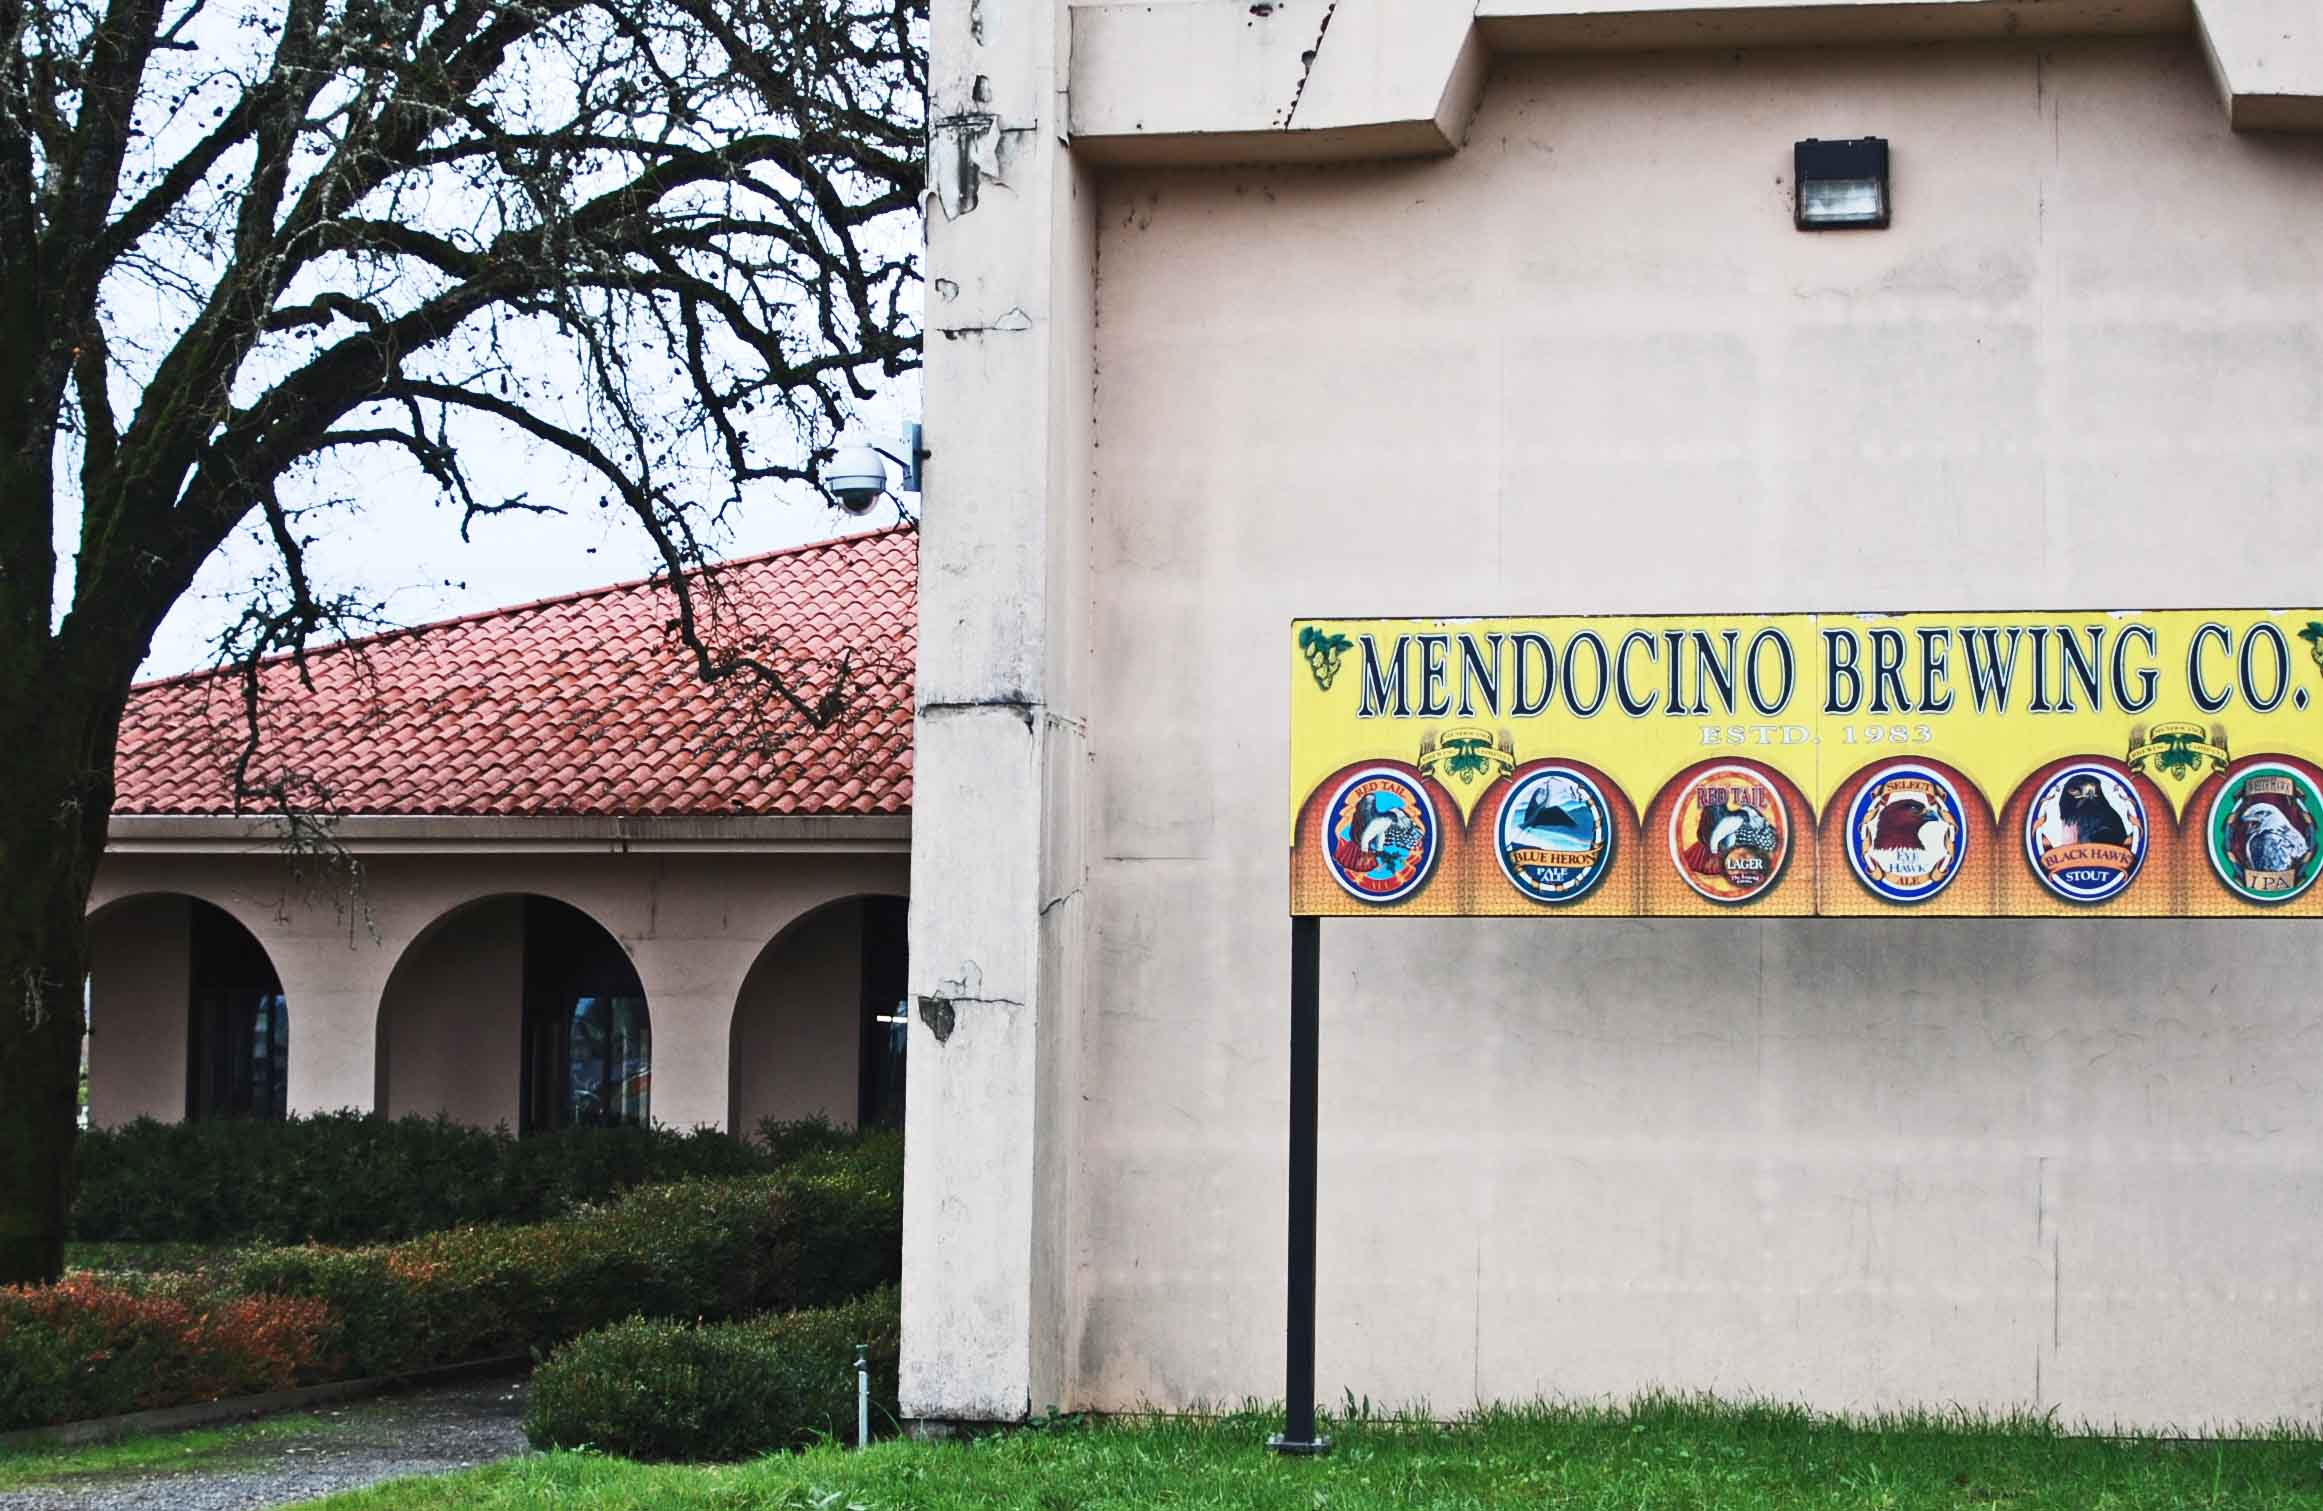 118. Mendocino Brewing Co, Ukiah, CA 2012